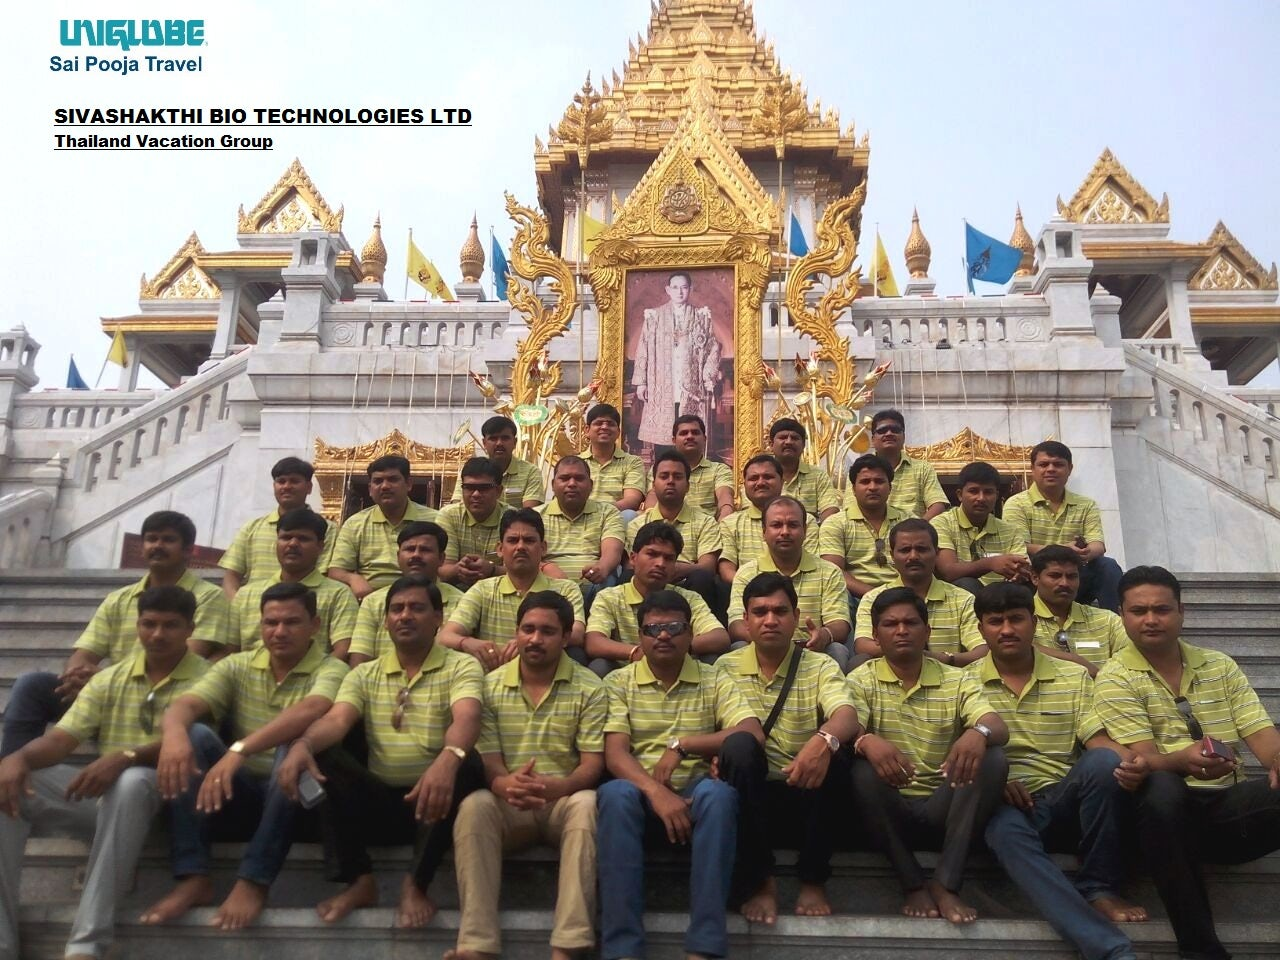 Thailand Vacation Group accommodate by UNIGLOBE Sai Pooja Travel